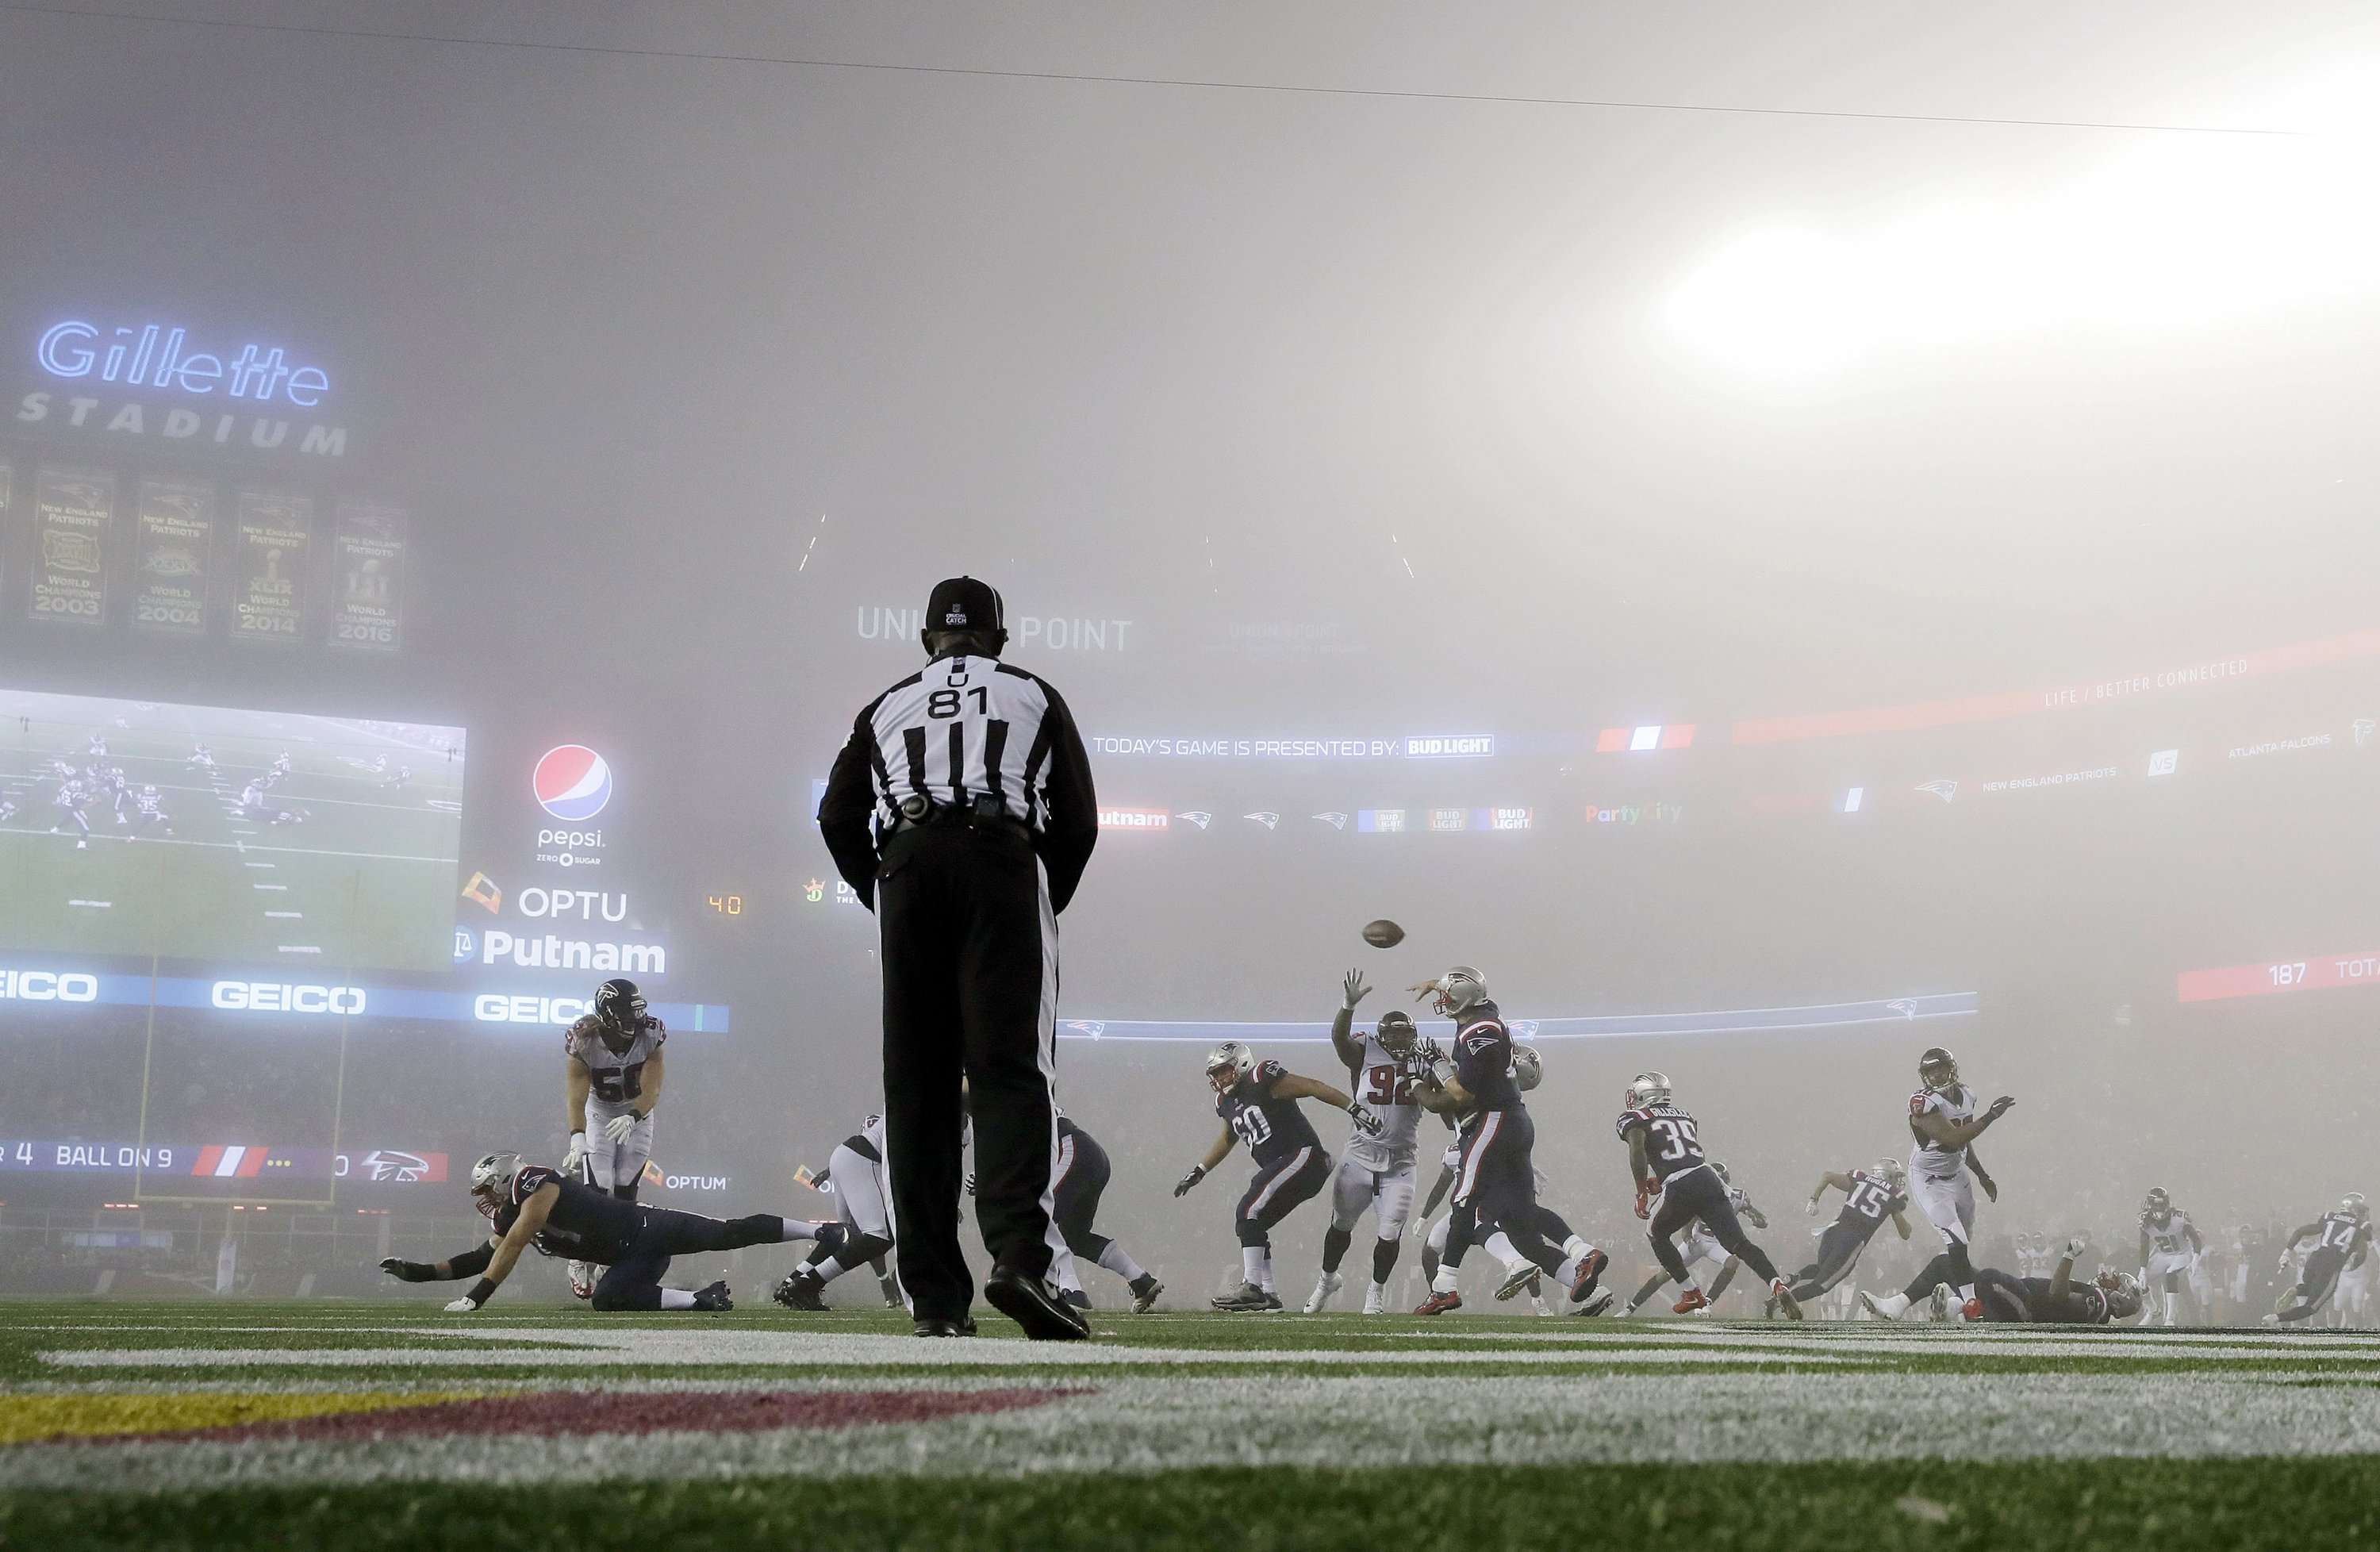 Latest from NFL: Pats and fog dominate Super Bowl rematch